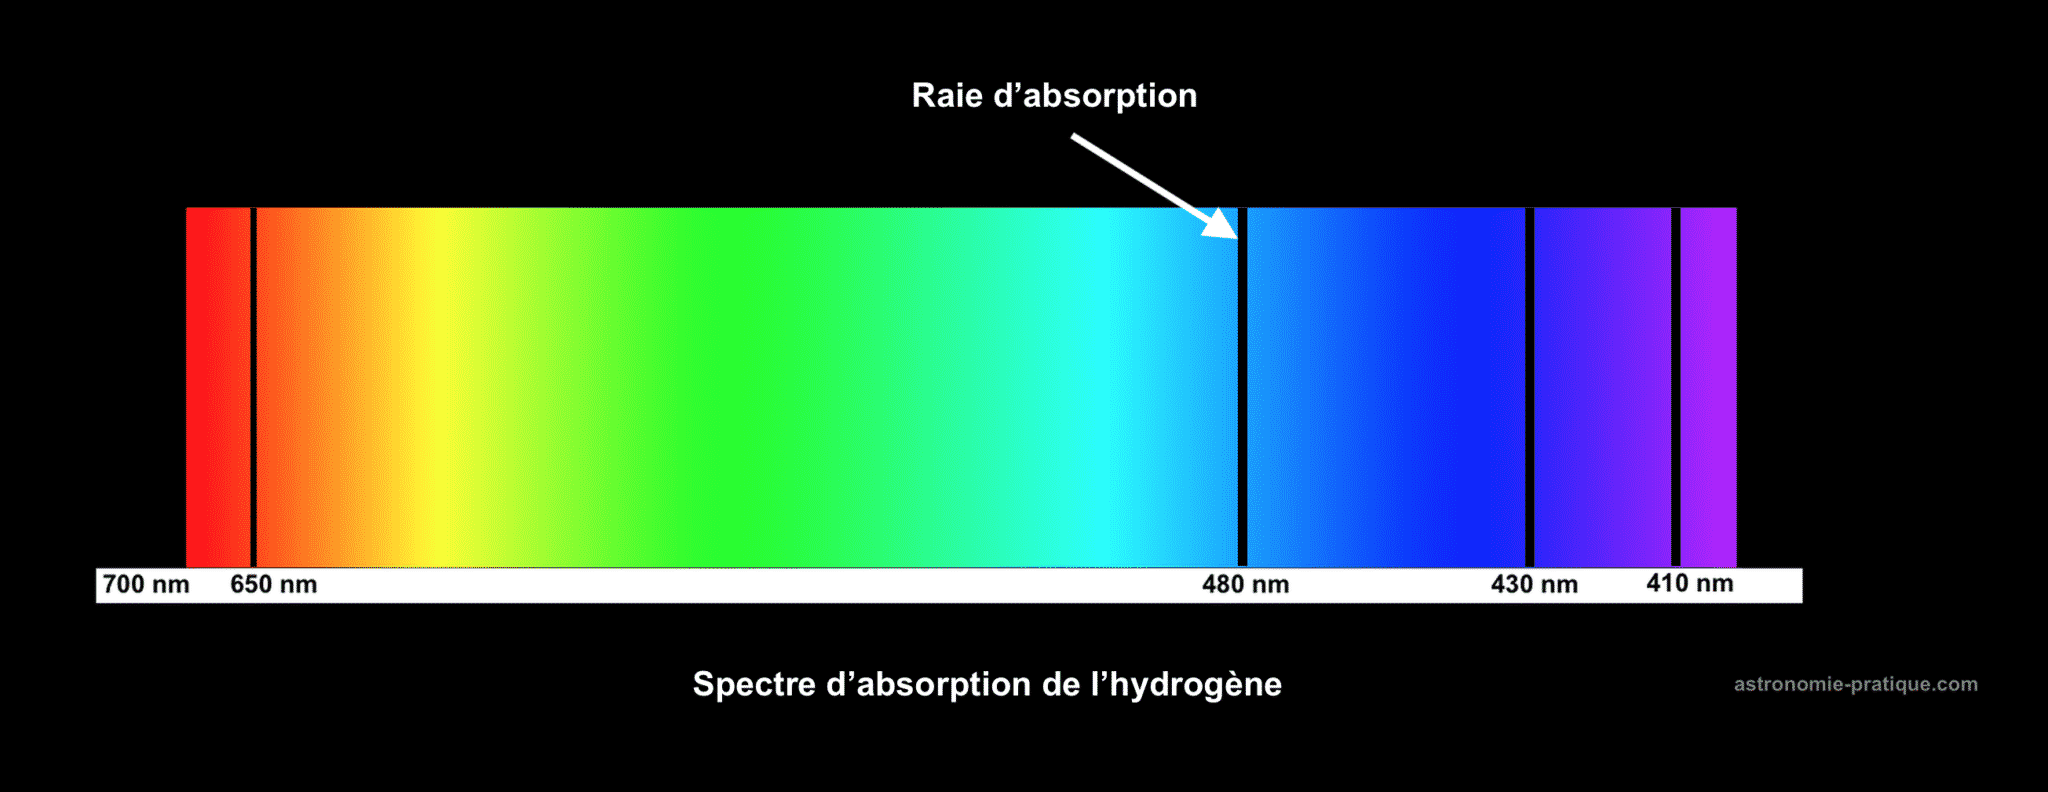 spectre d'absorption de l'hydrogène